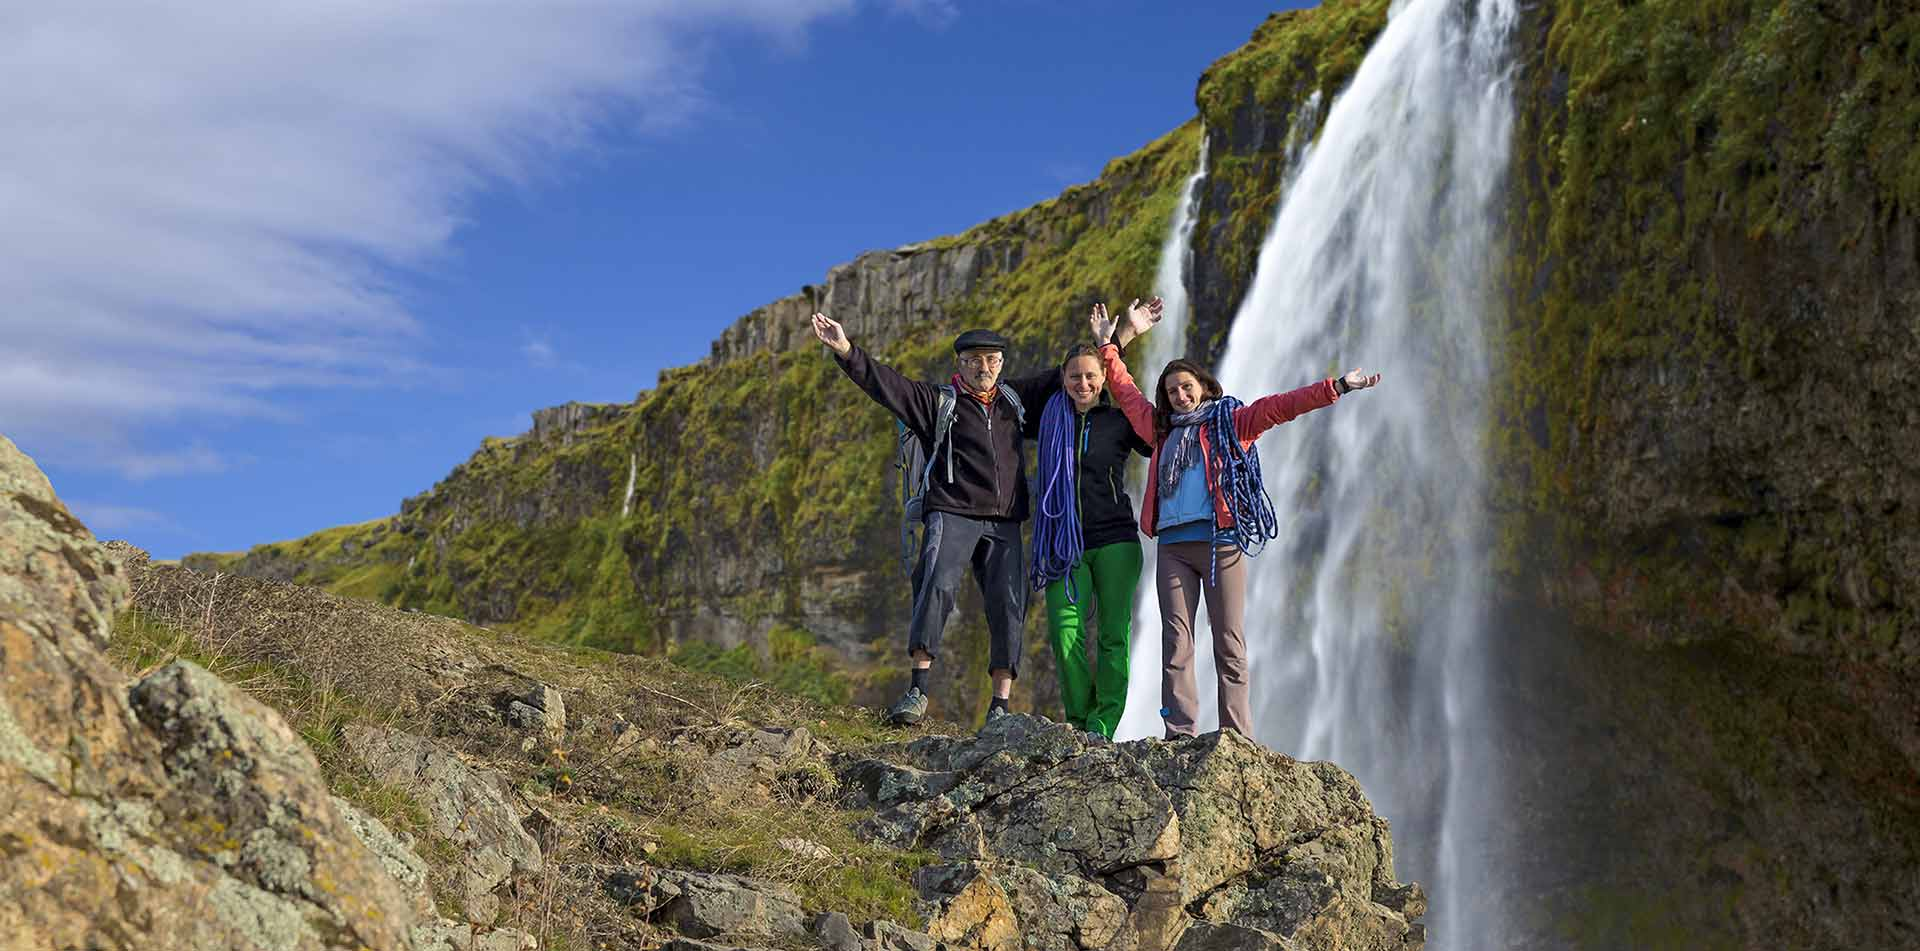 Group in front of waterfall, Iceland